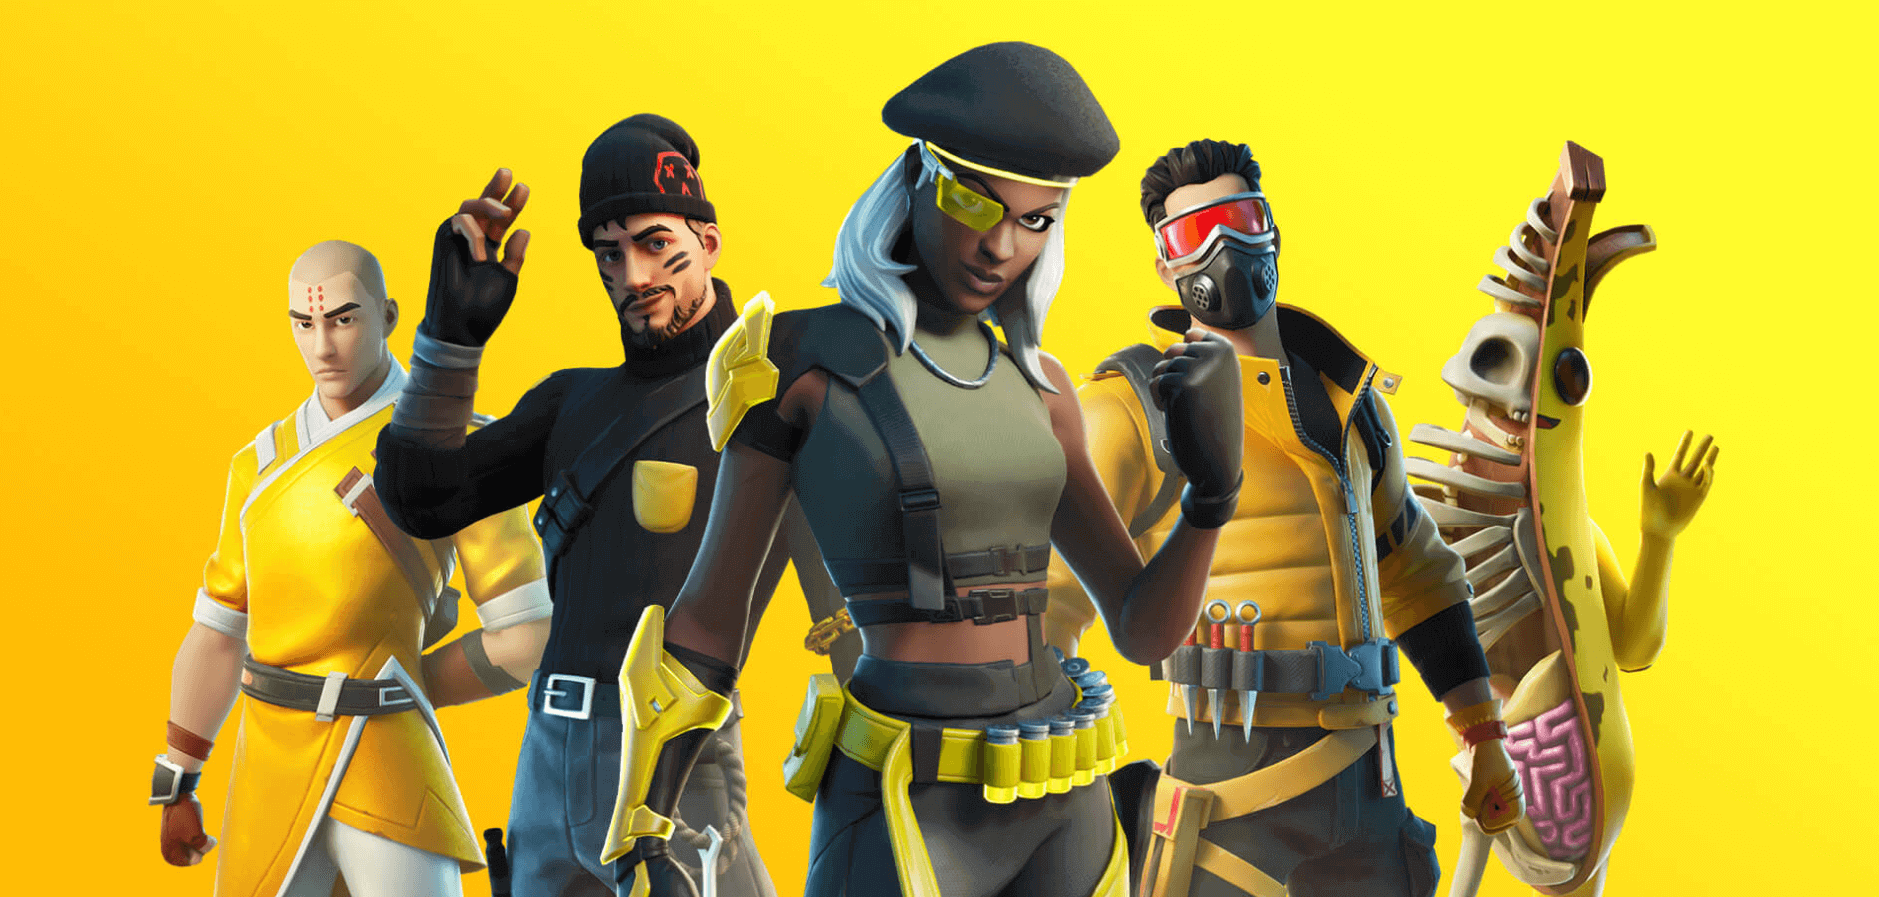 Epic Games announce Fortnite support for next-gen consoles